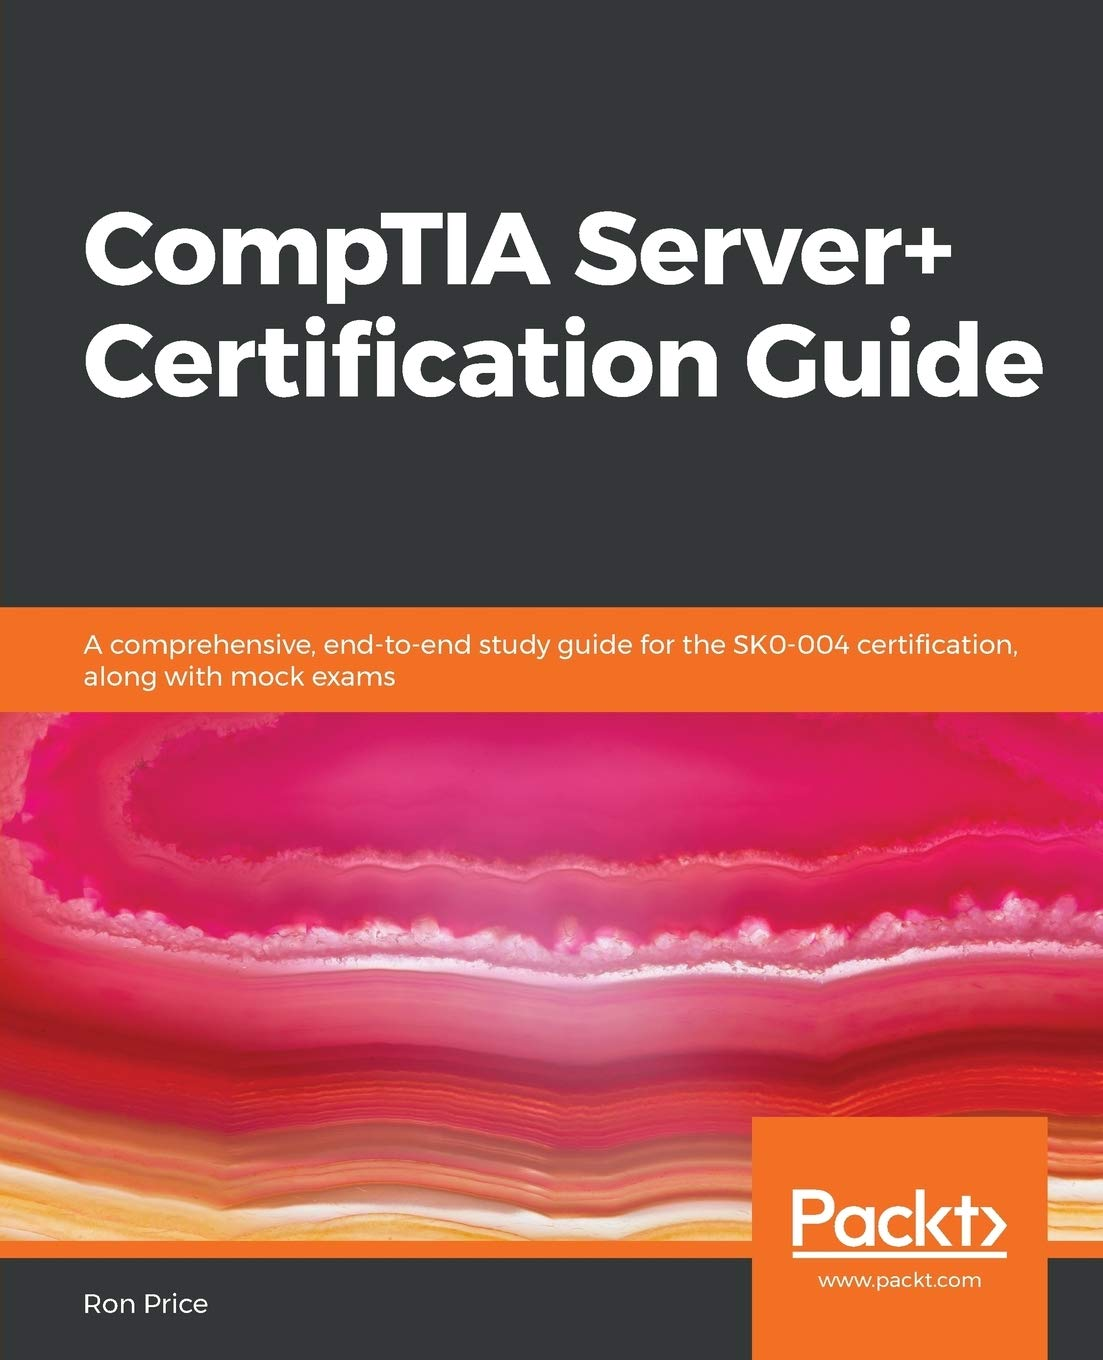 CompTIA Server+ Certification Guide: A comprehensive, end-to-end study guide for the SK0-004 certification, along with mock exams